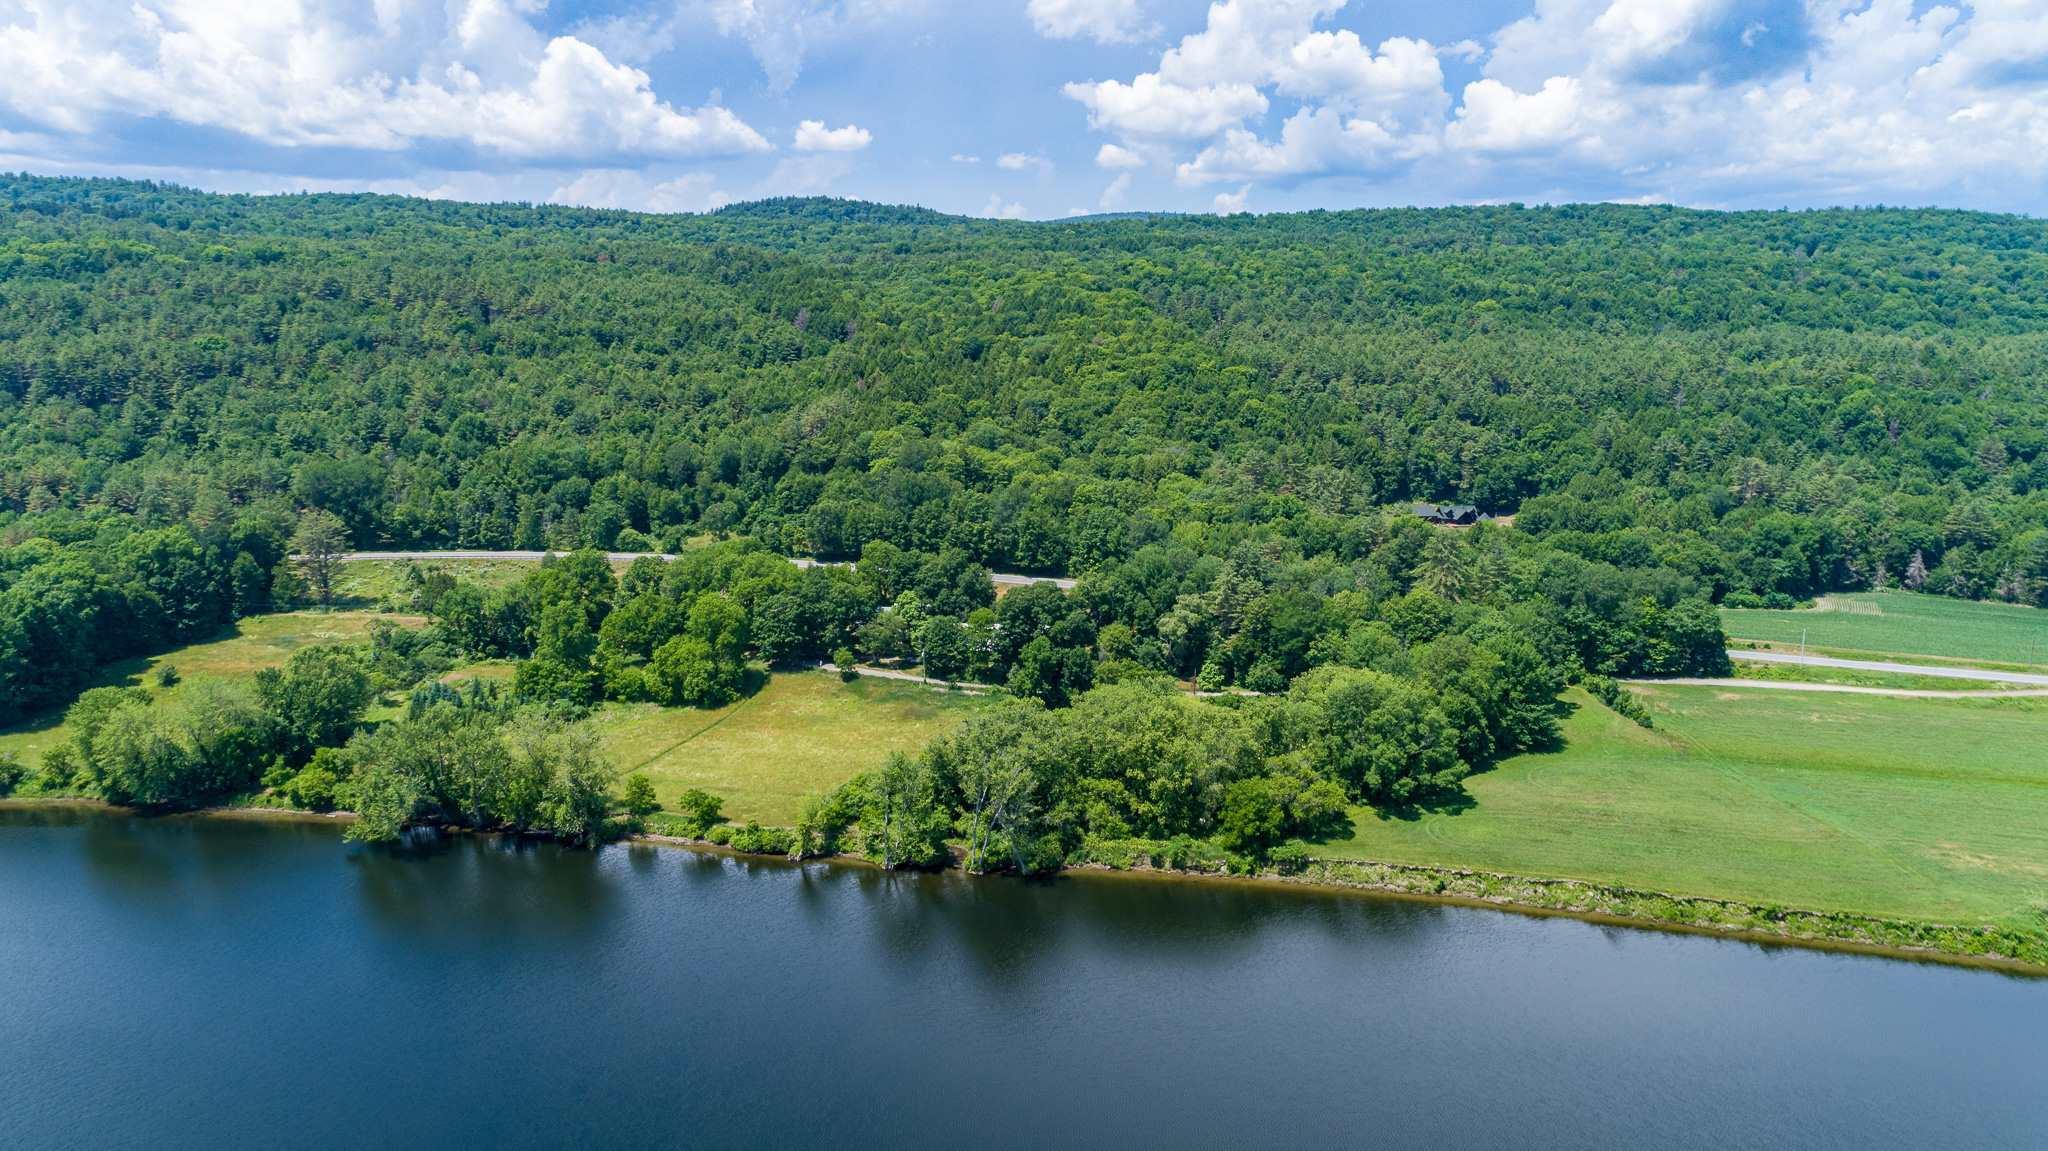 Showing southern field on River--another housesite subdivision potential? 12528761